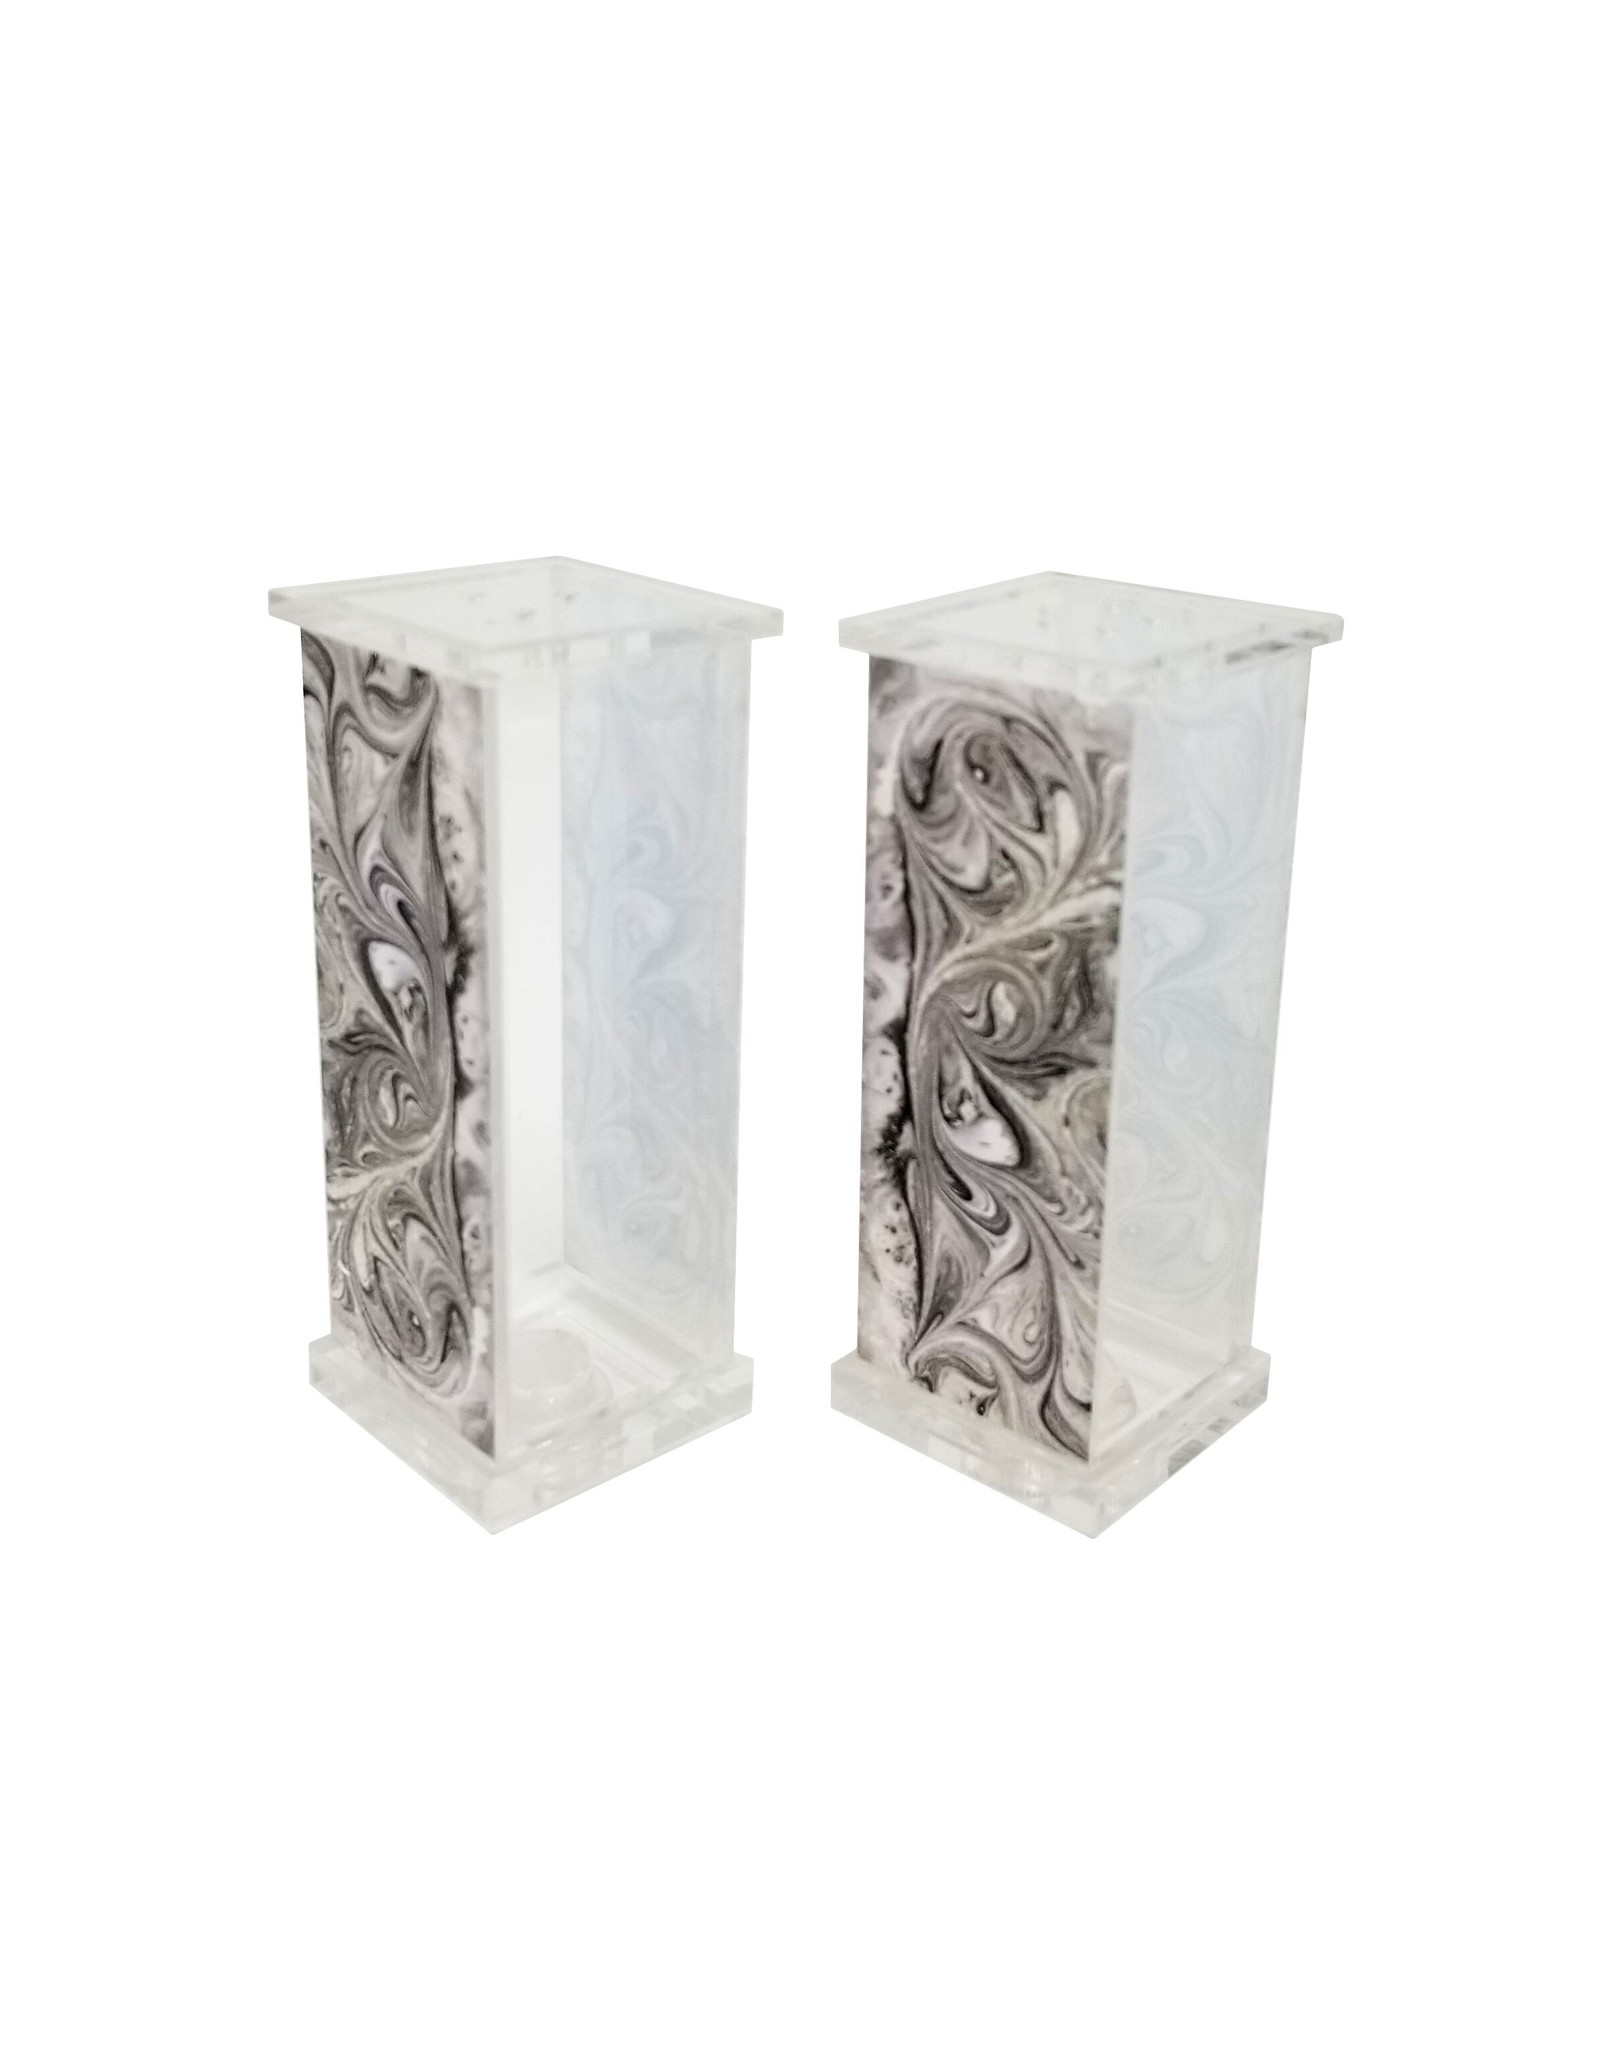 Presented Touch Acrylic Salt & Pepper Set Grey Marble